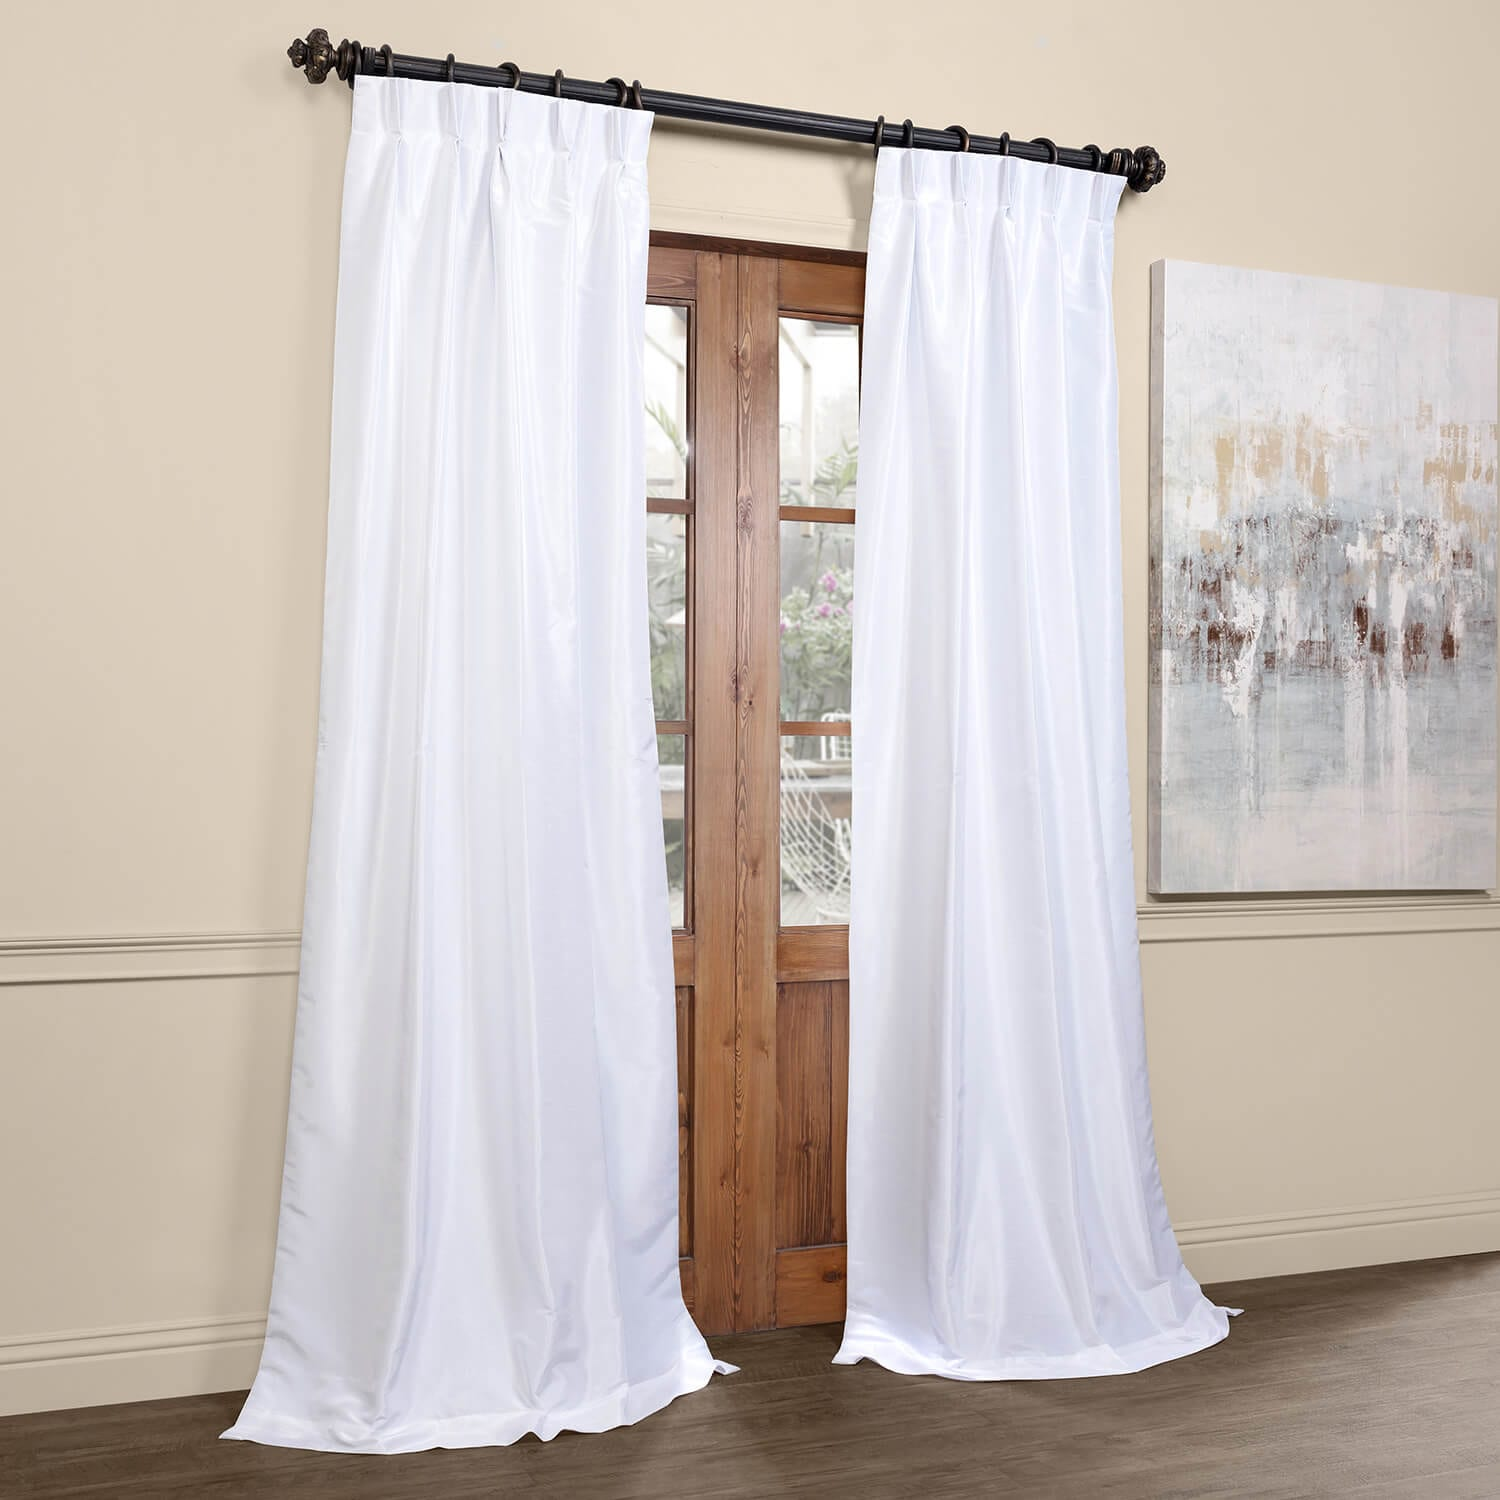 Ice Blackout Vintage Textured Faux Dupioni Pleated Curtain